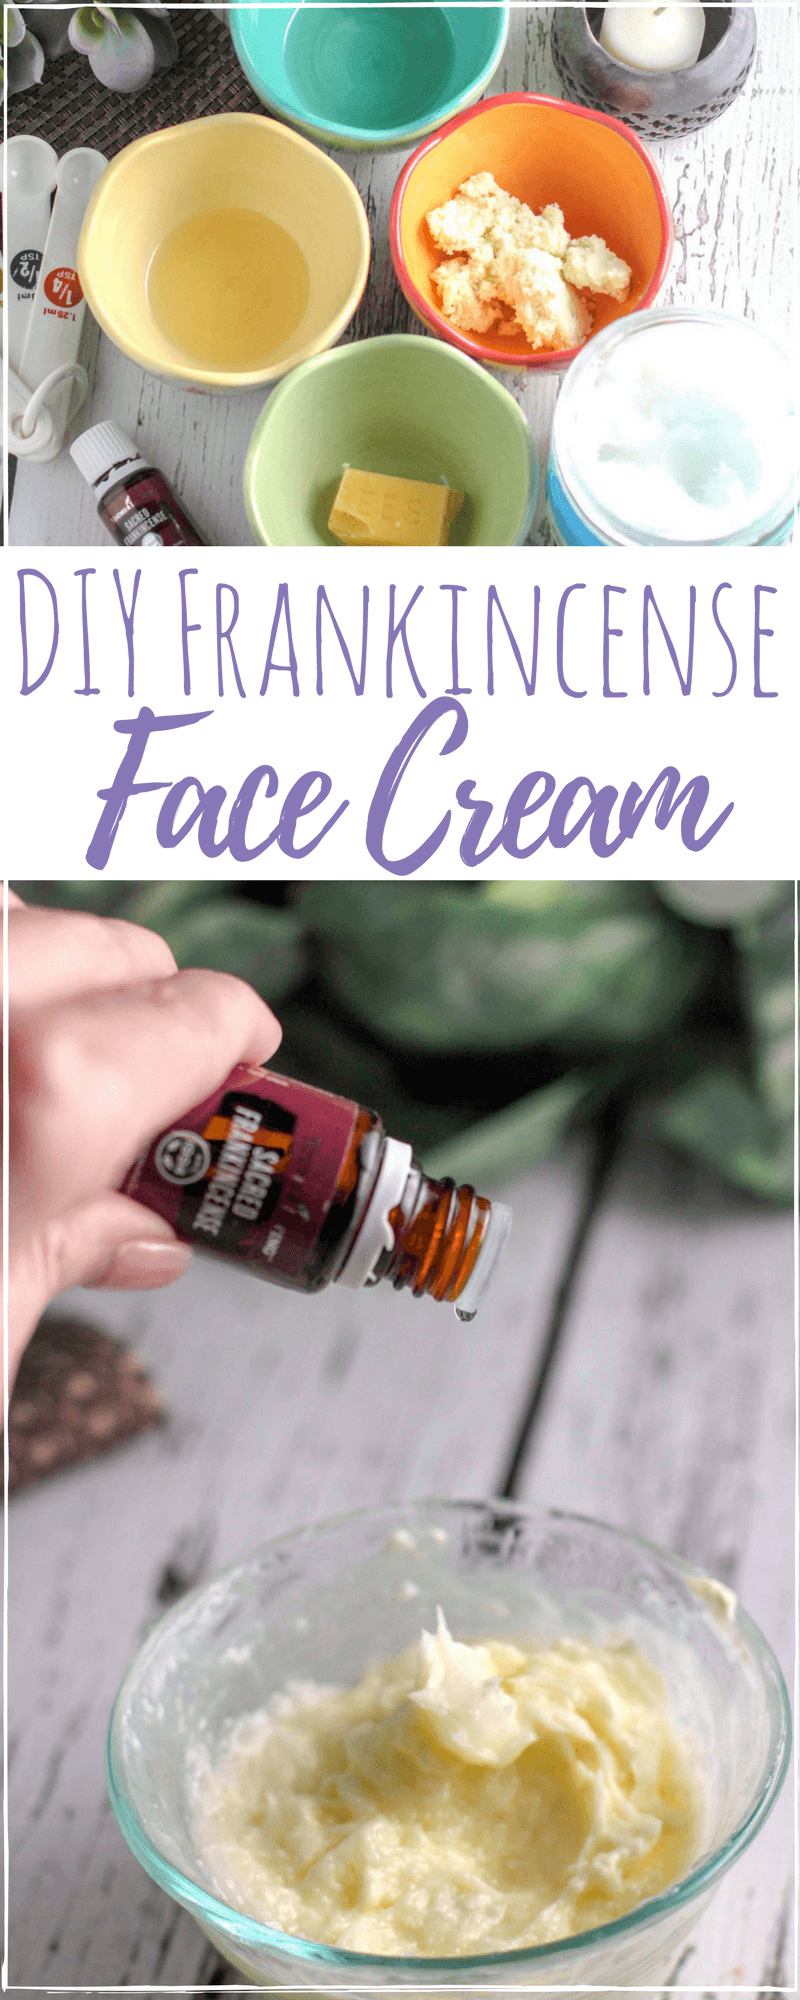 DIY frankincense face cream is the perfect anti-aging skin care you can trust. Non-toxic and all natural, you will love using this face cream daily. #antiaging #antiagingcream #AntiWrinkle #diyskincare #moisturizing  #skincare